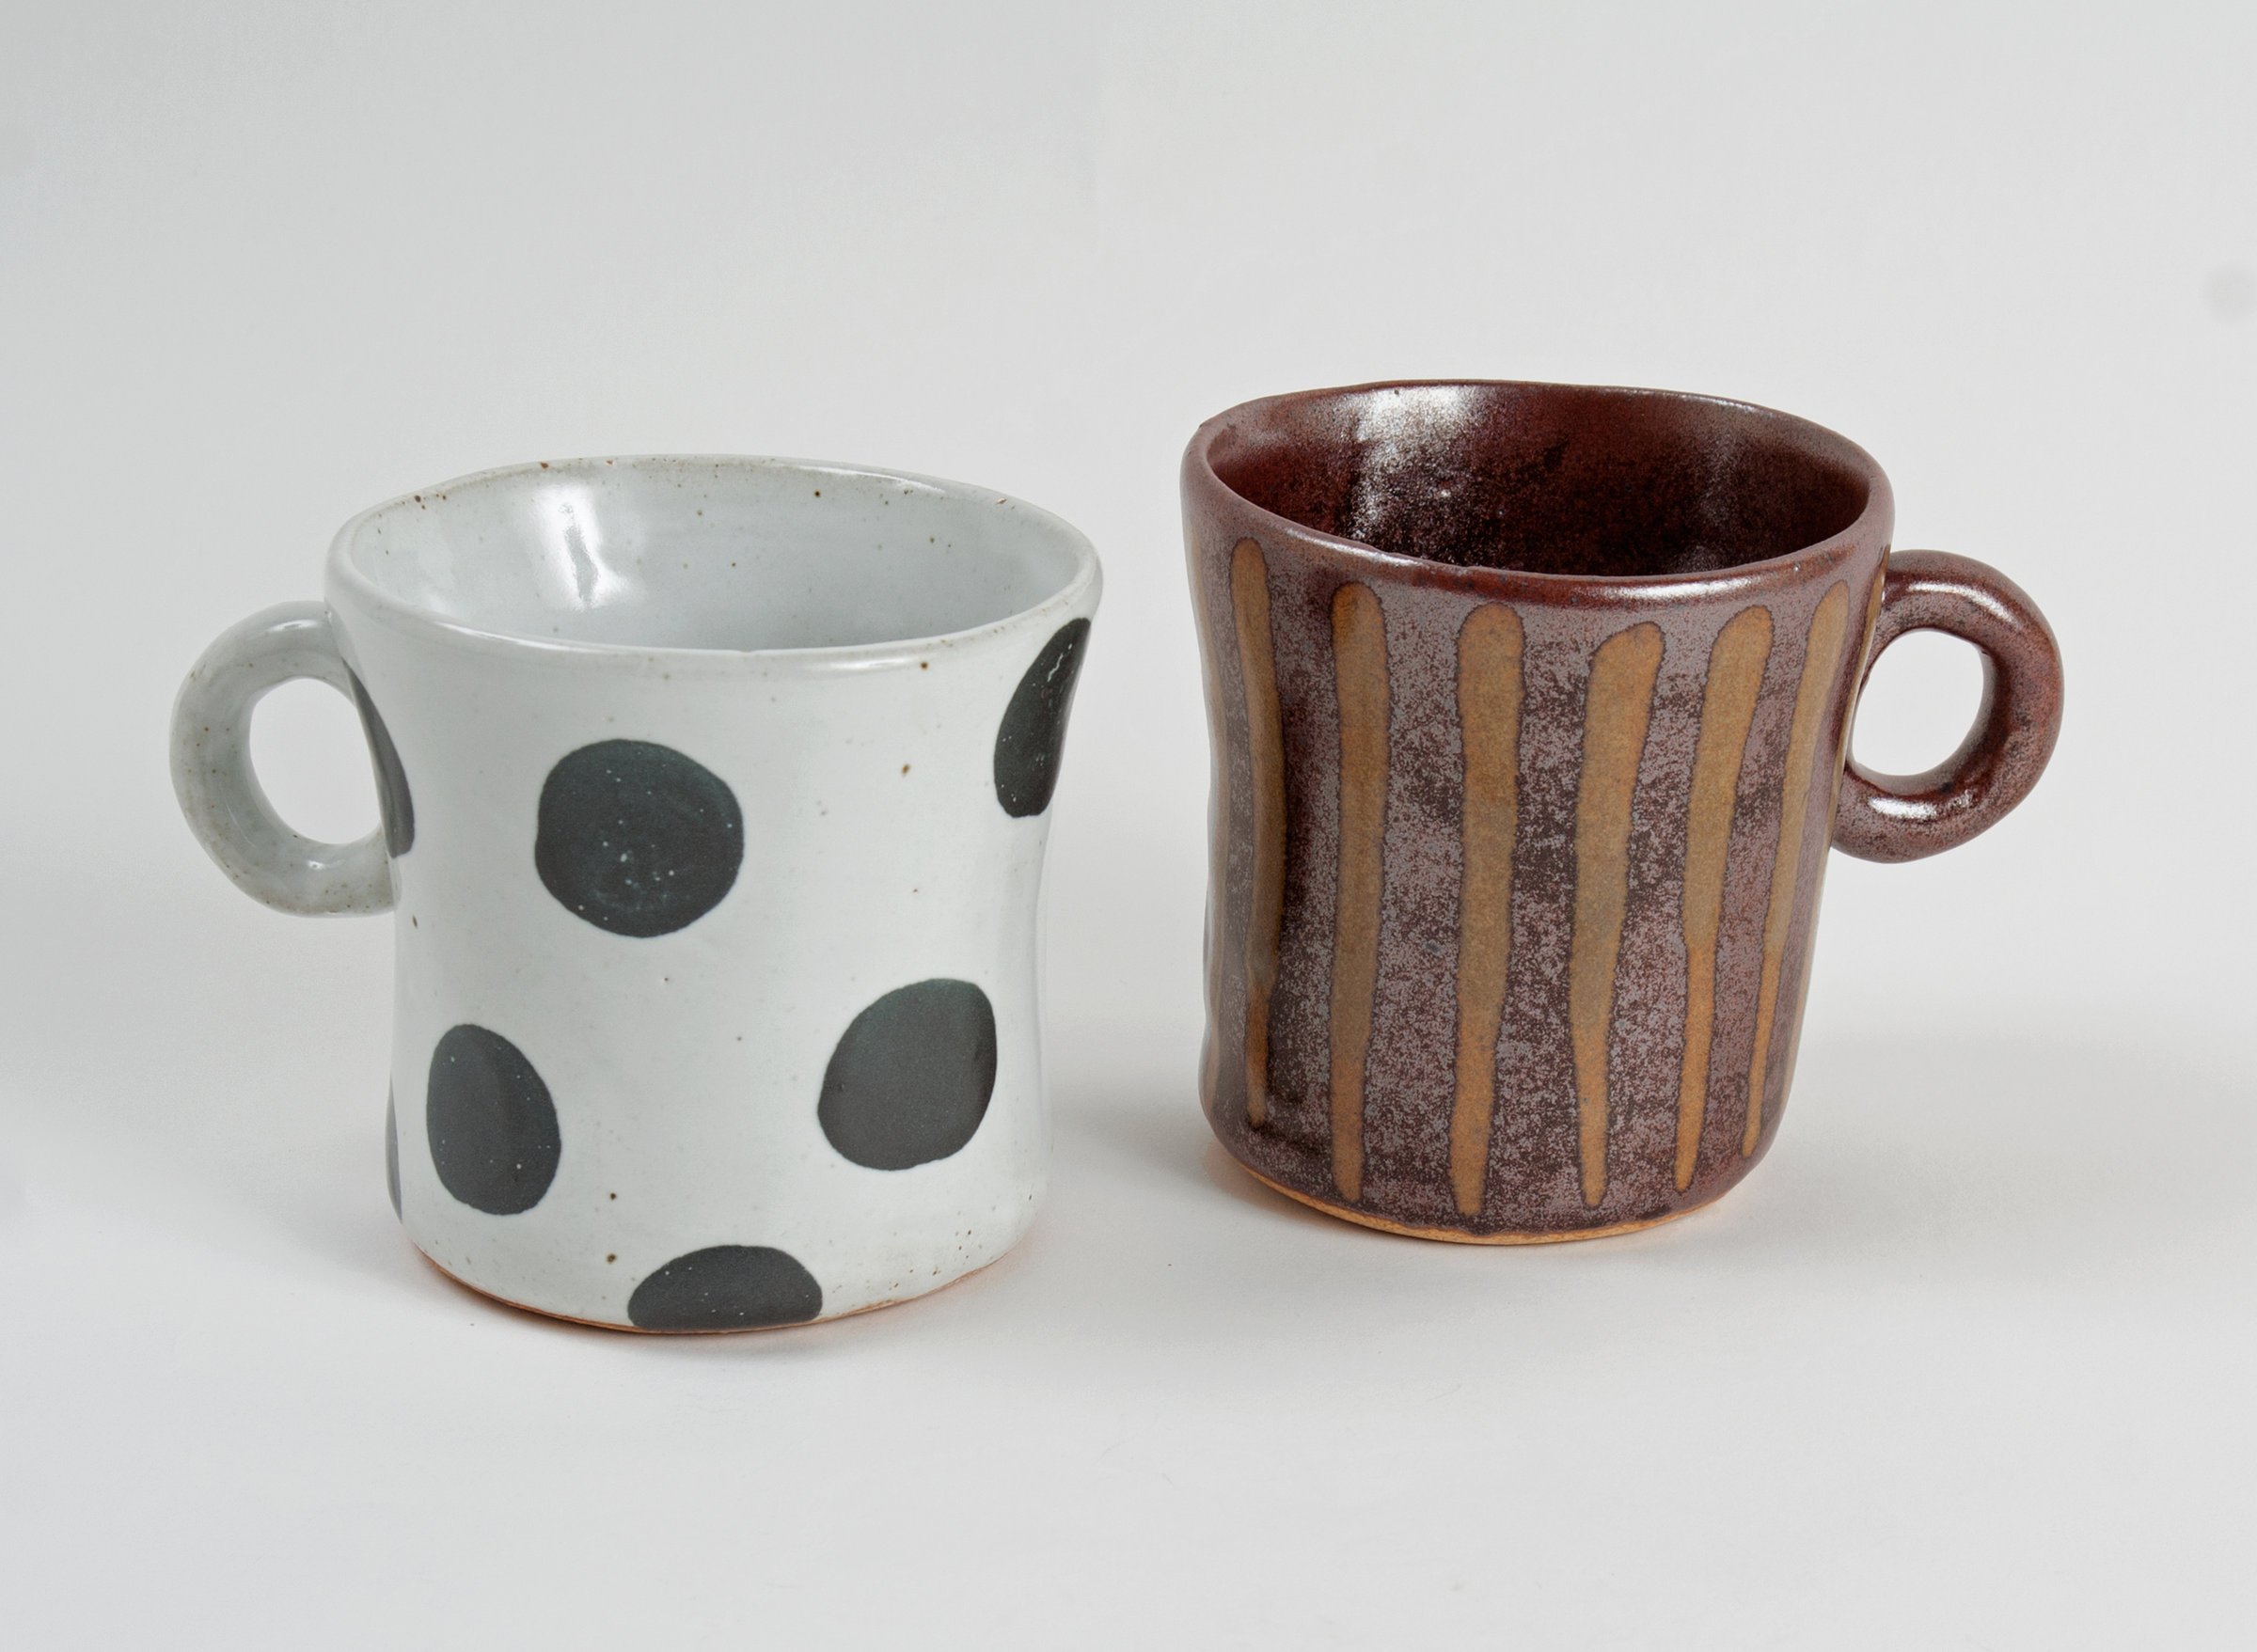 Elegant G Stripe By Michael Jones Ceramic Travel Mugs Ceramic Mugs Patterned Stoneware Black Dot G Stripe By Michael Jones Artful Home Patterned Stoneware Black Dot furniture Unique Ceramic Mugs